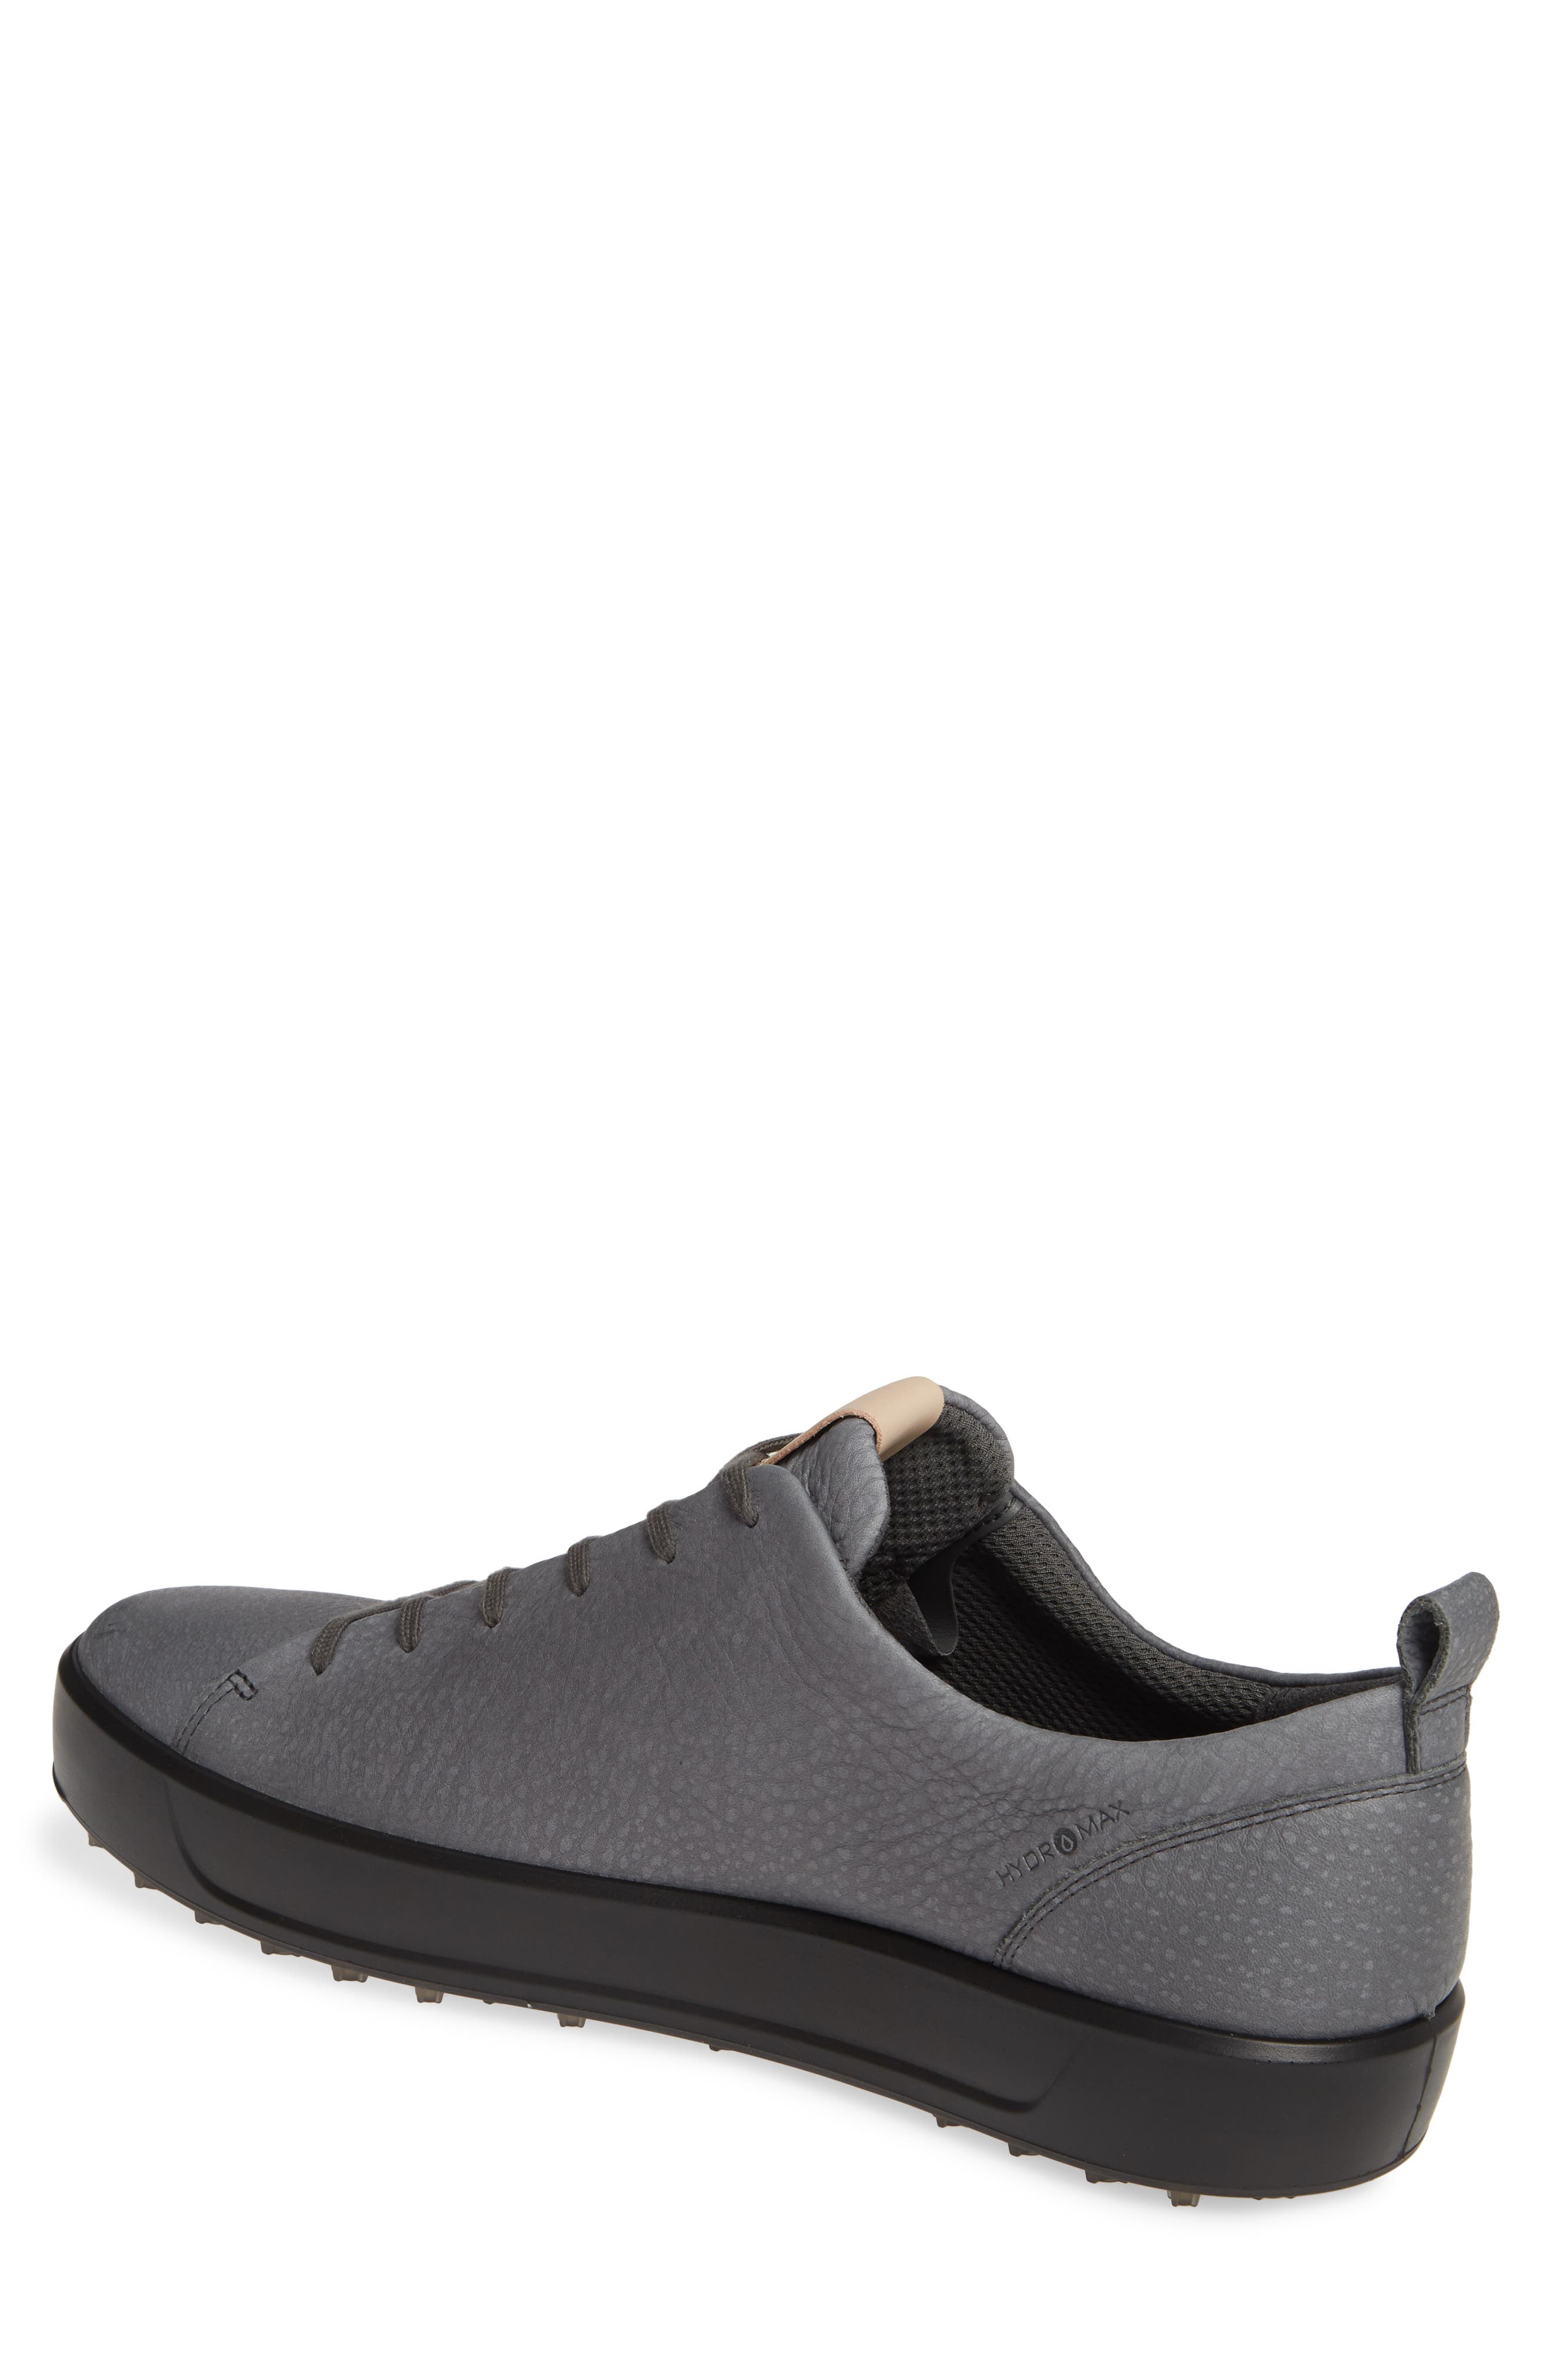 ECCO, Hydromax<sup>®</sup> Golf Shoe, Alternate thumbnail 2, color, DARK SHADOW LEATHER